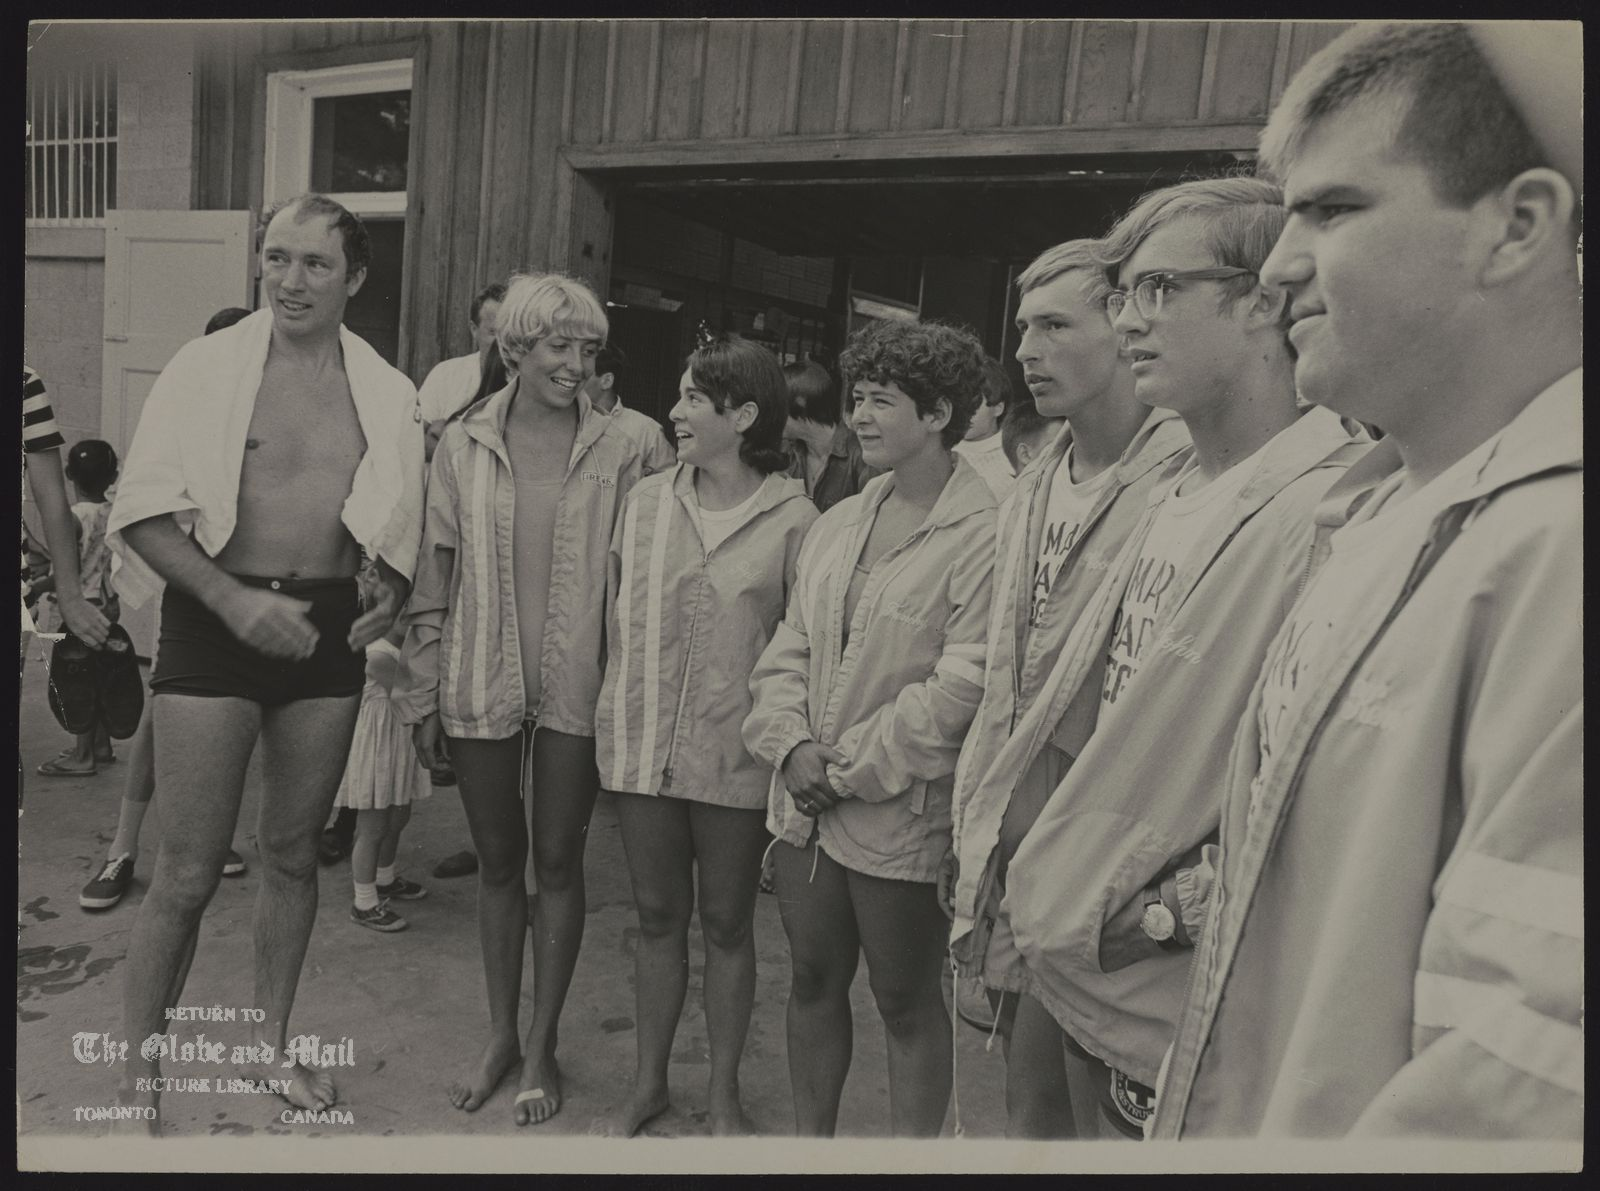 Pierre Elliott TRUDEAU Quebec. Politician (misc) Prime Minister Trudeau in bathing suit at left at Stratford